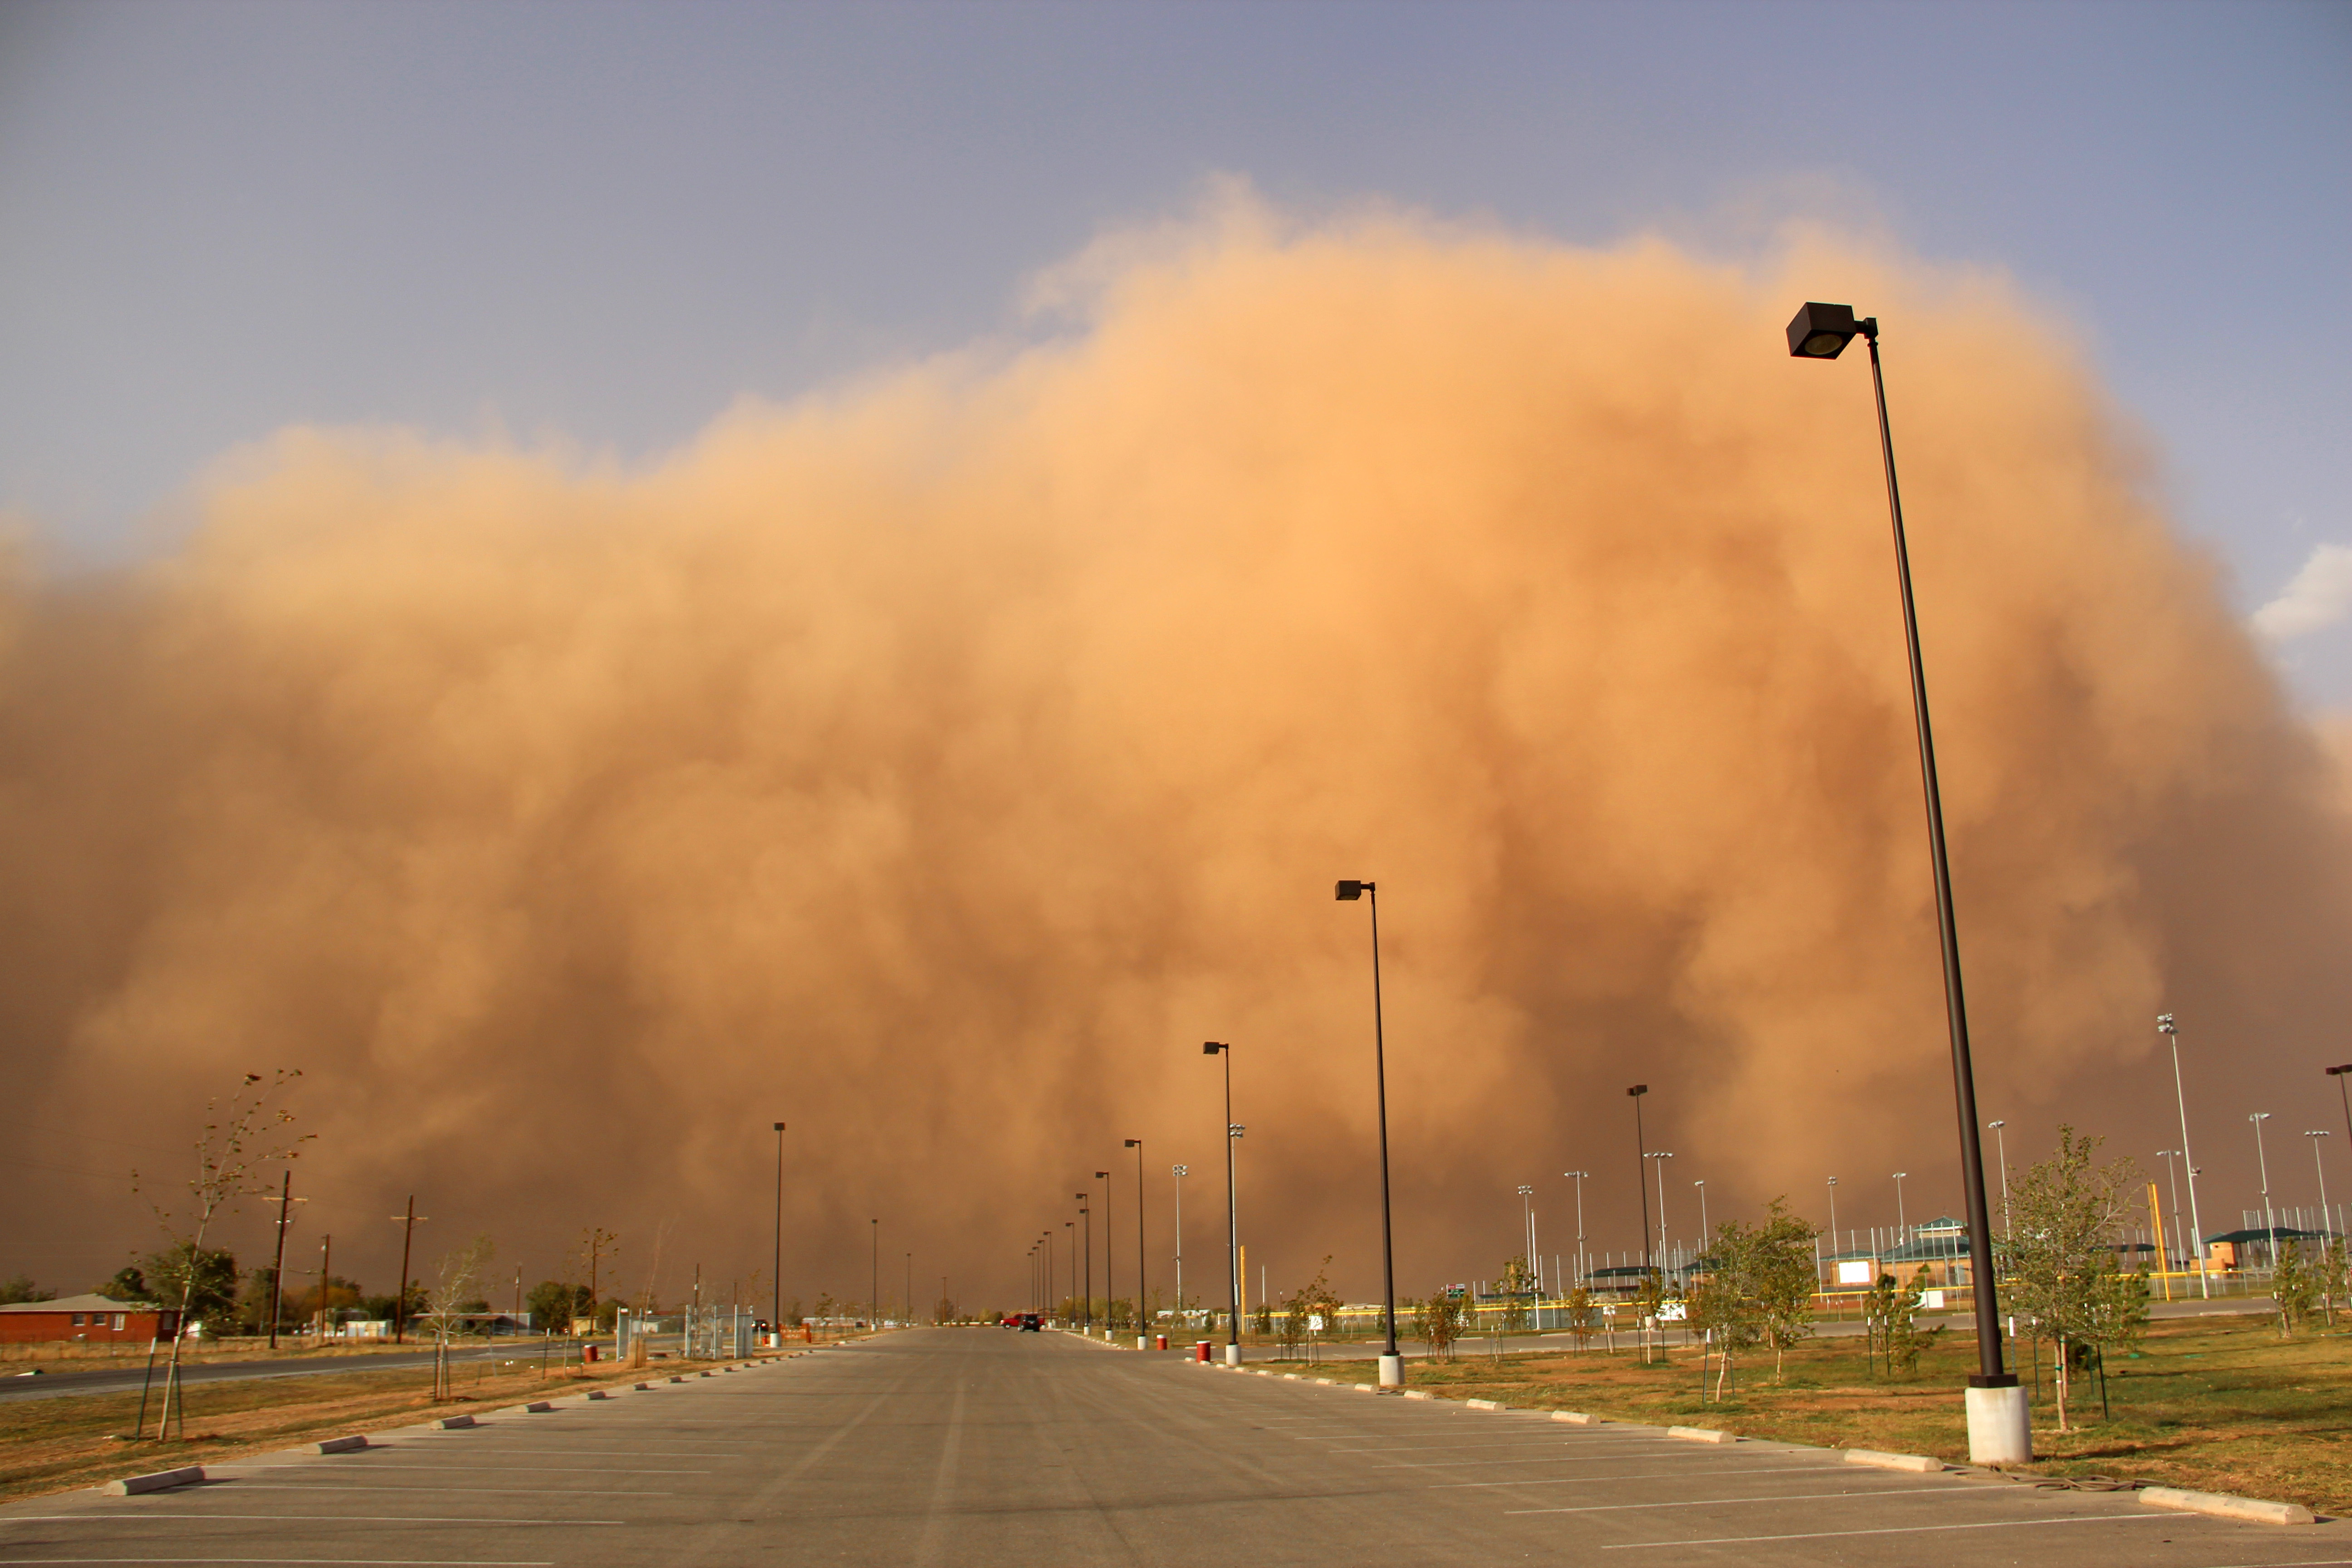 How Dust Storms Confuse Air Quality Reports